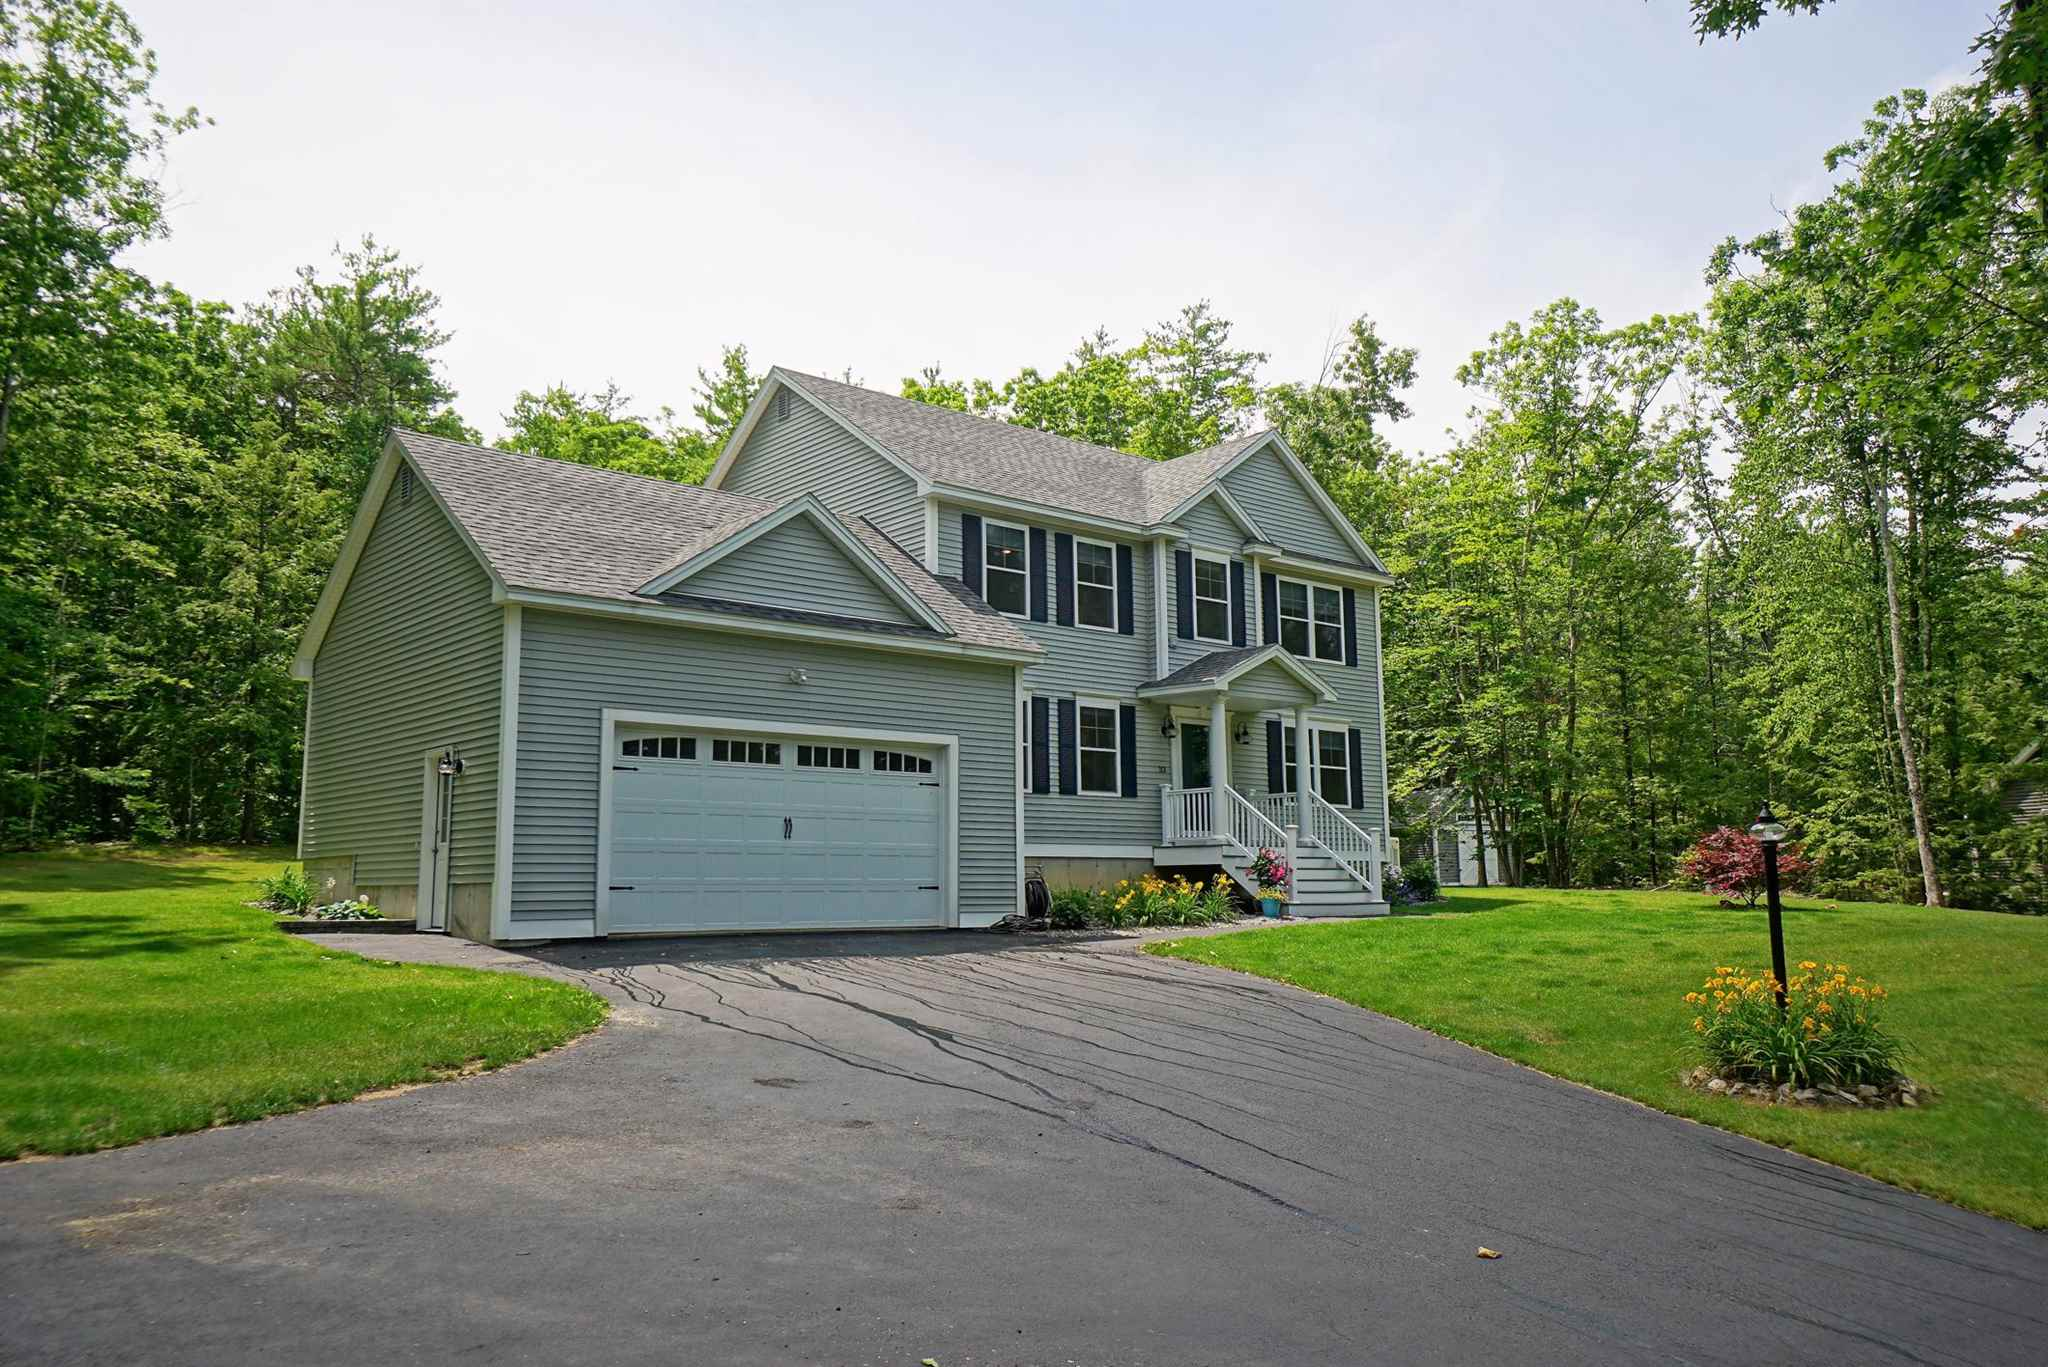 Photo of 33 Sandybrook Drive Raymond NH 03077